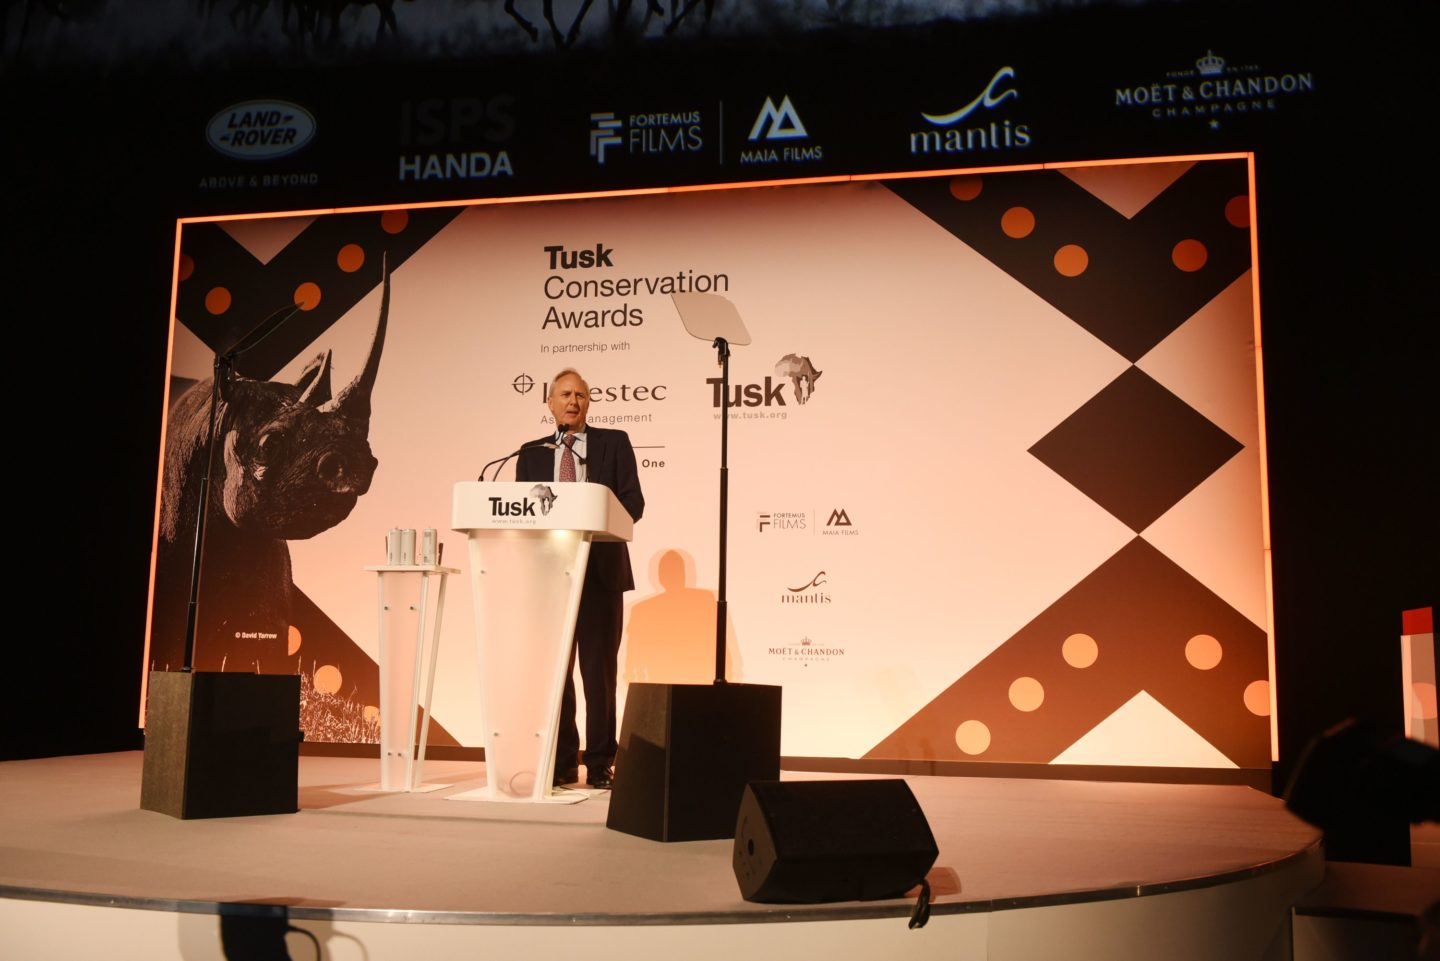 Tusk CEO Charlie Mayhew spoke of how the finalists provide 'real hope for the future of Africa's natural heritage'